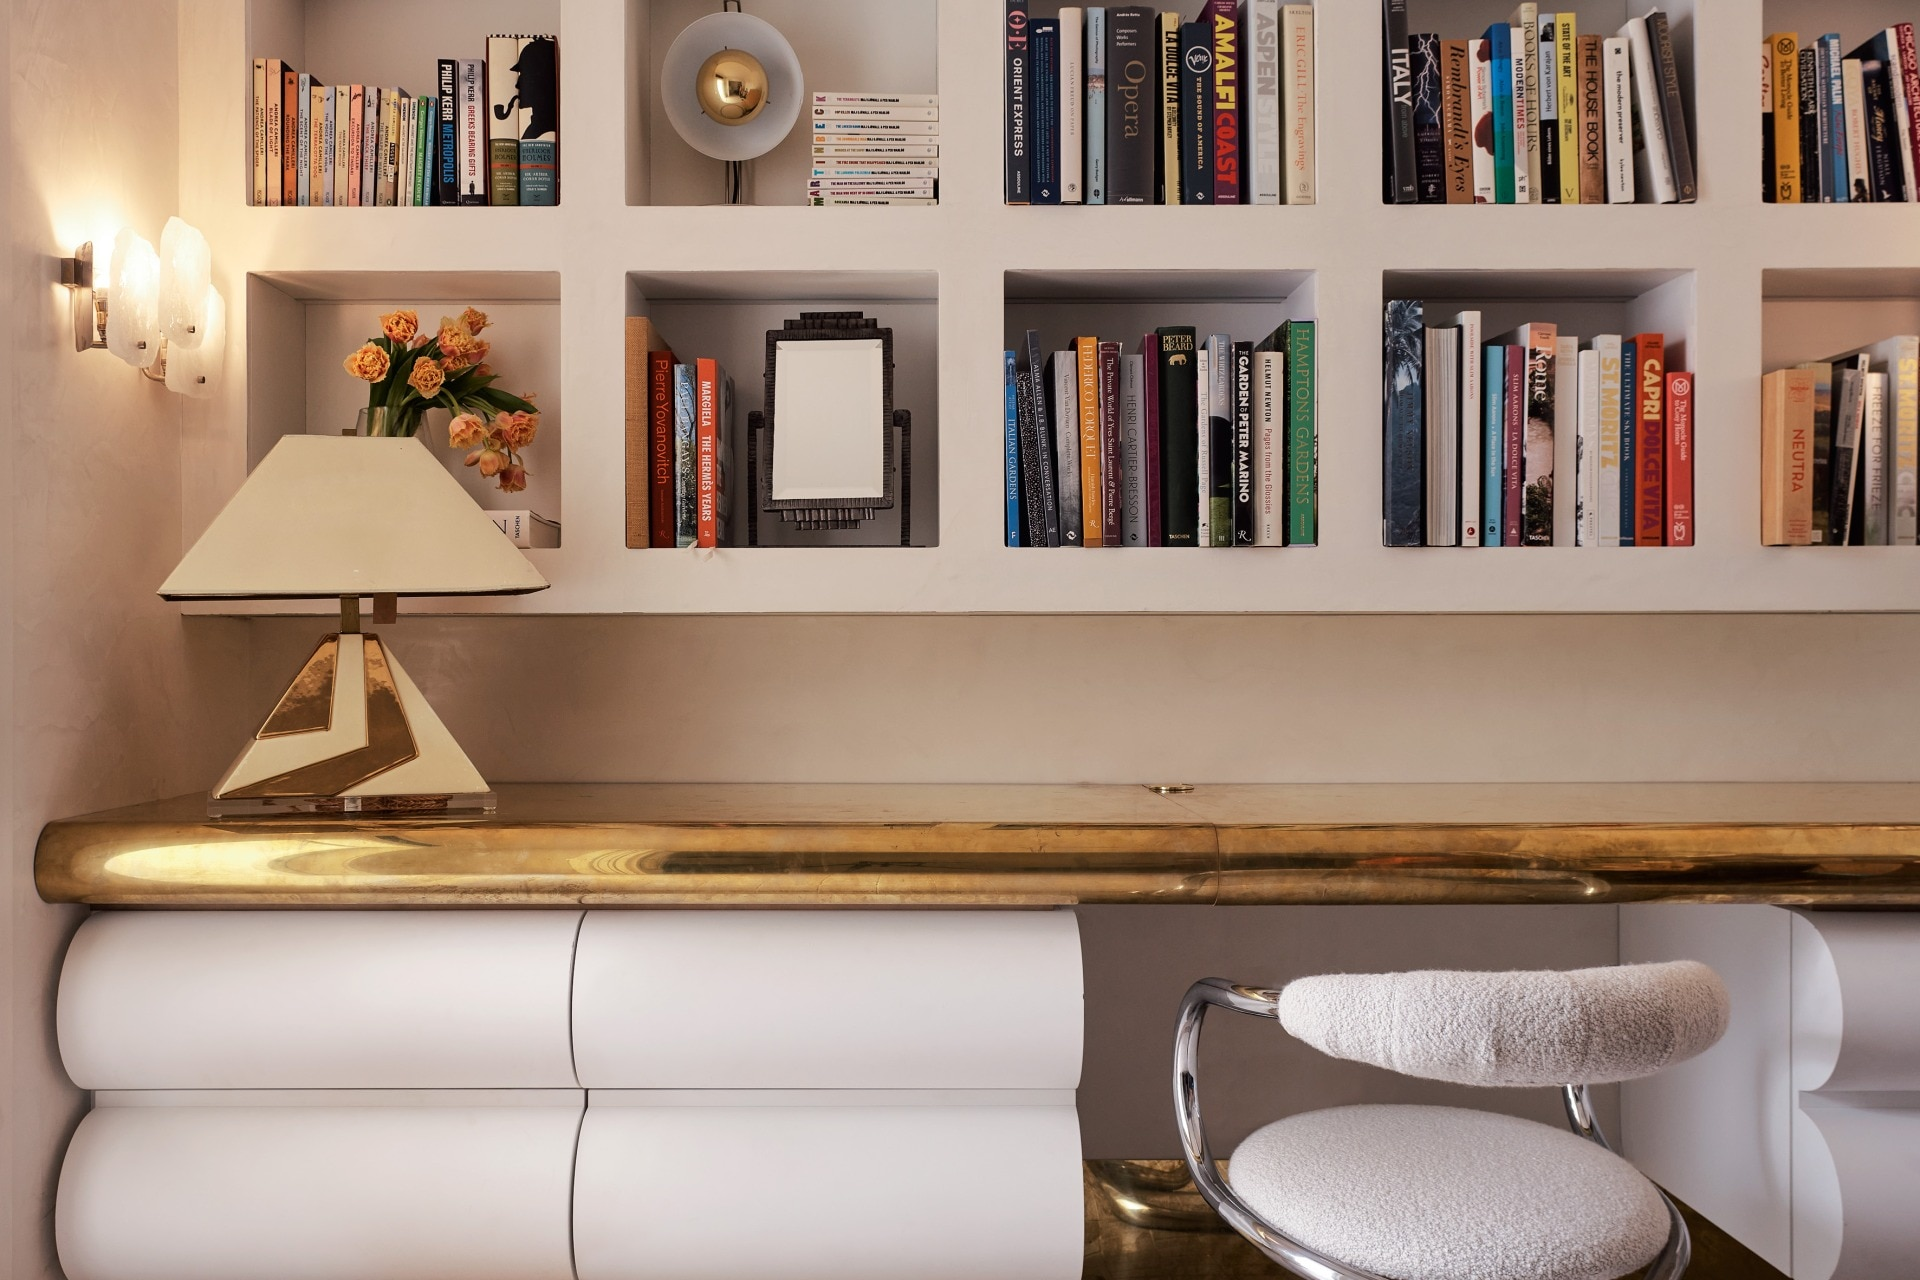 25 of the most stylish home office ideas we've ever seen